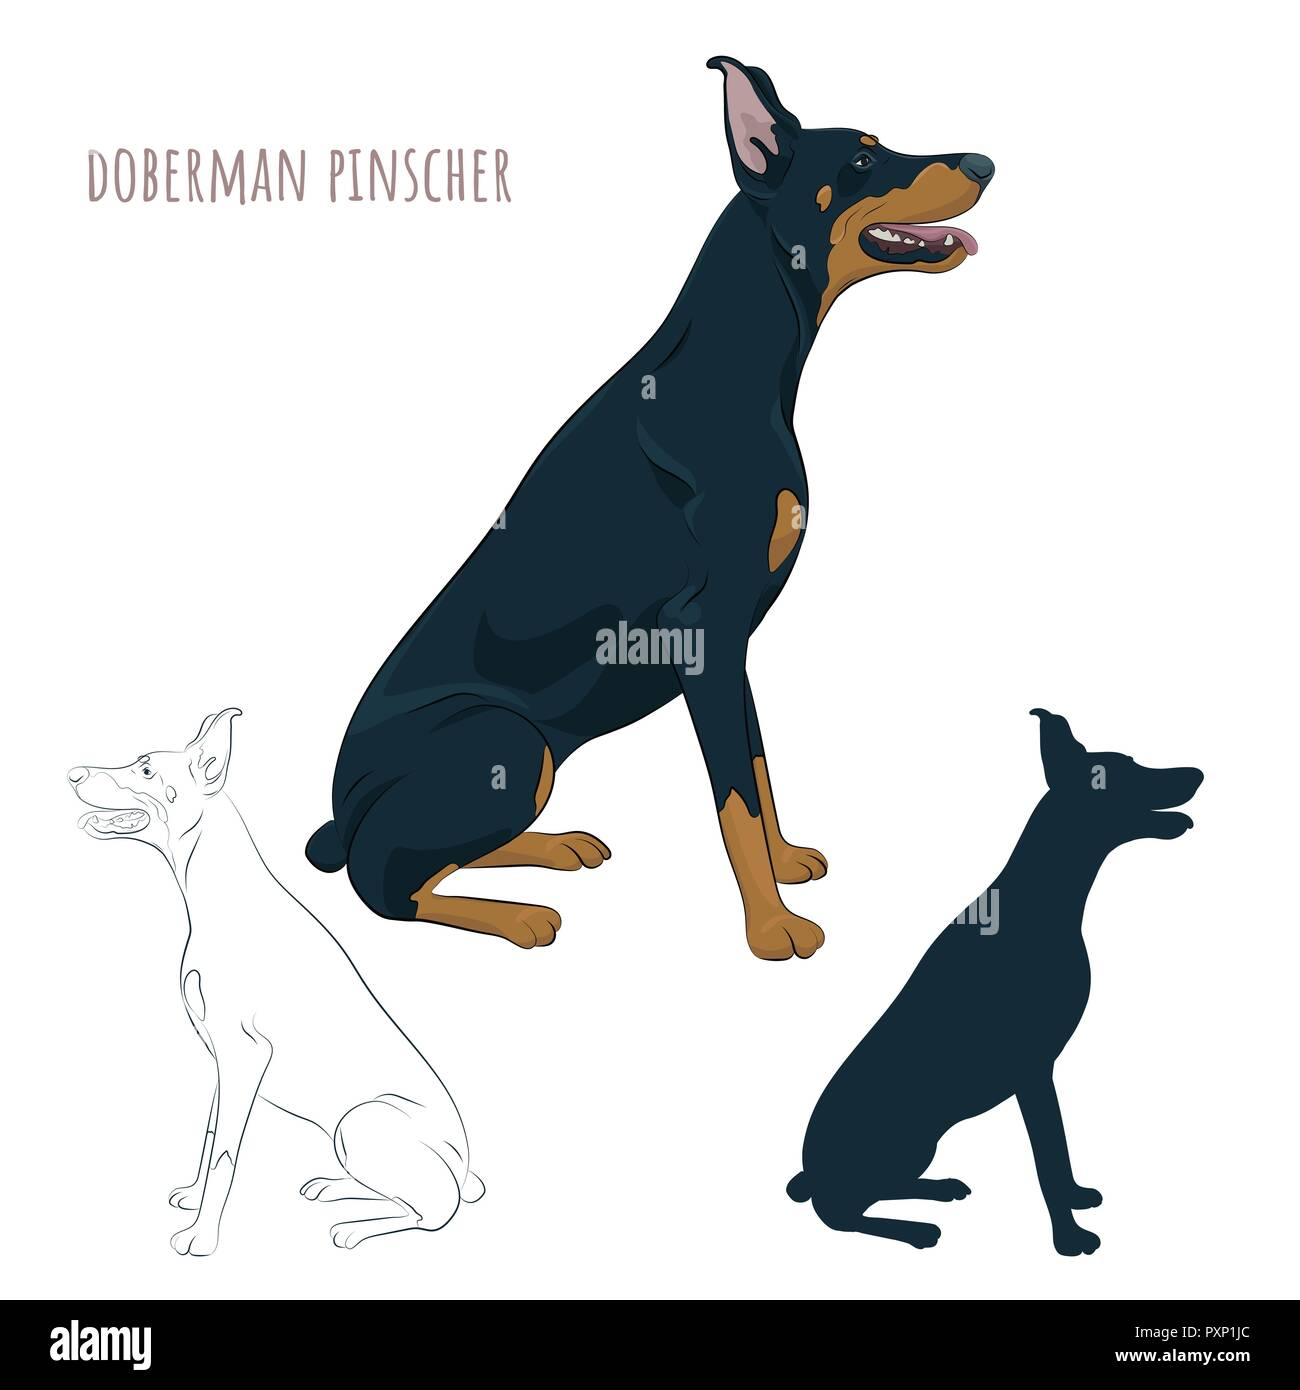 Doberman Pinscher sitting isolated on white background. Silhouette of sitting dog.Dobermann sitting and panting with tongue out. Watchdog for your des - Stock Image